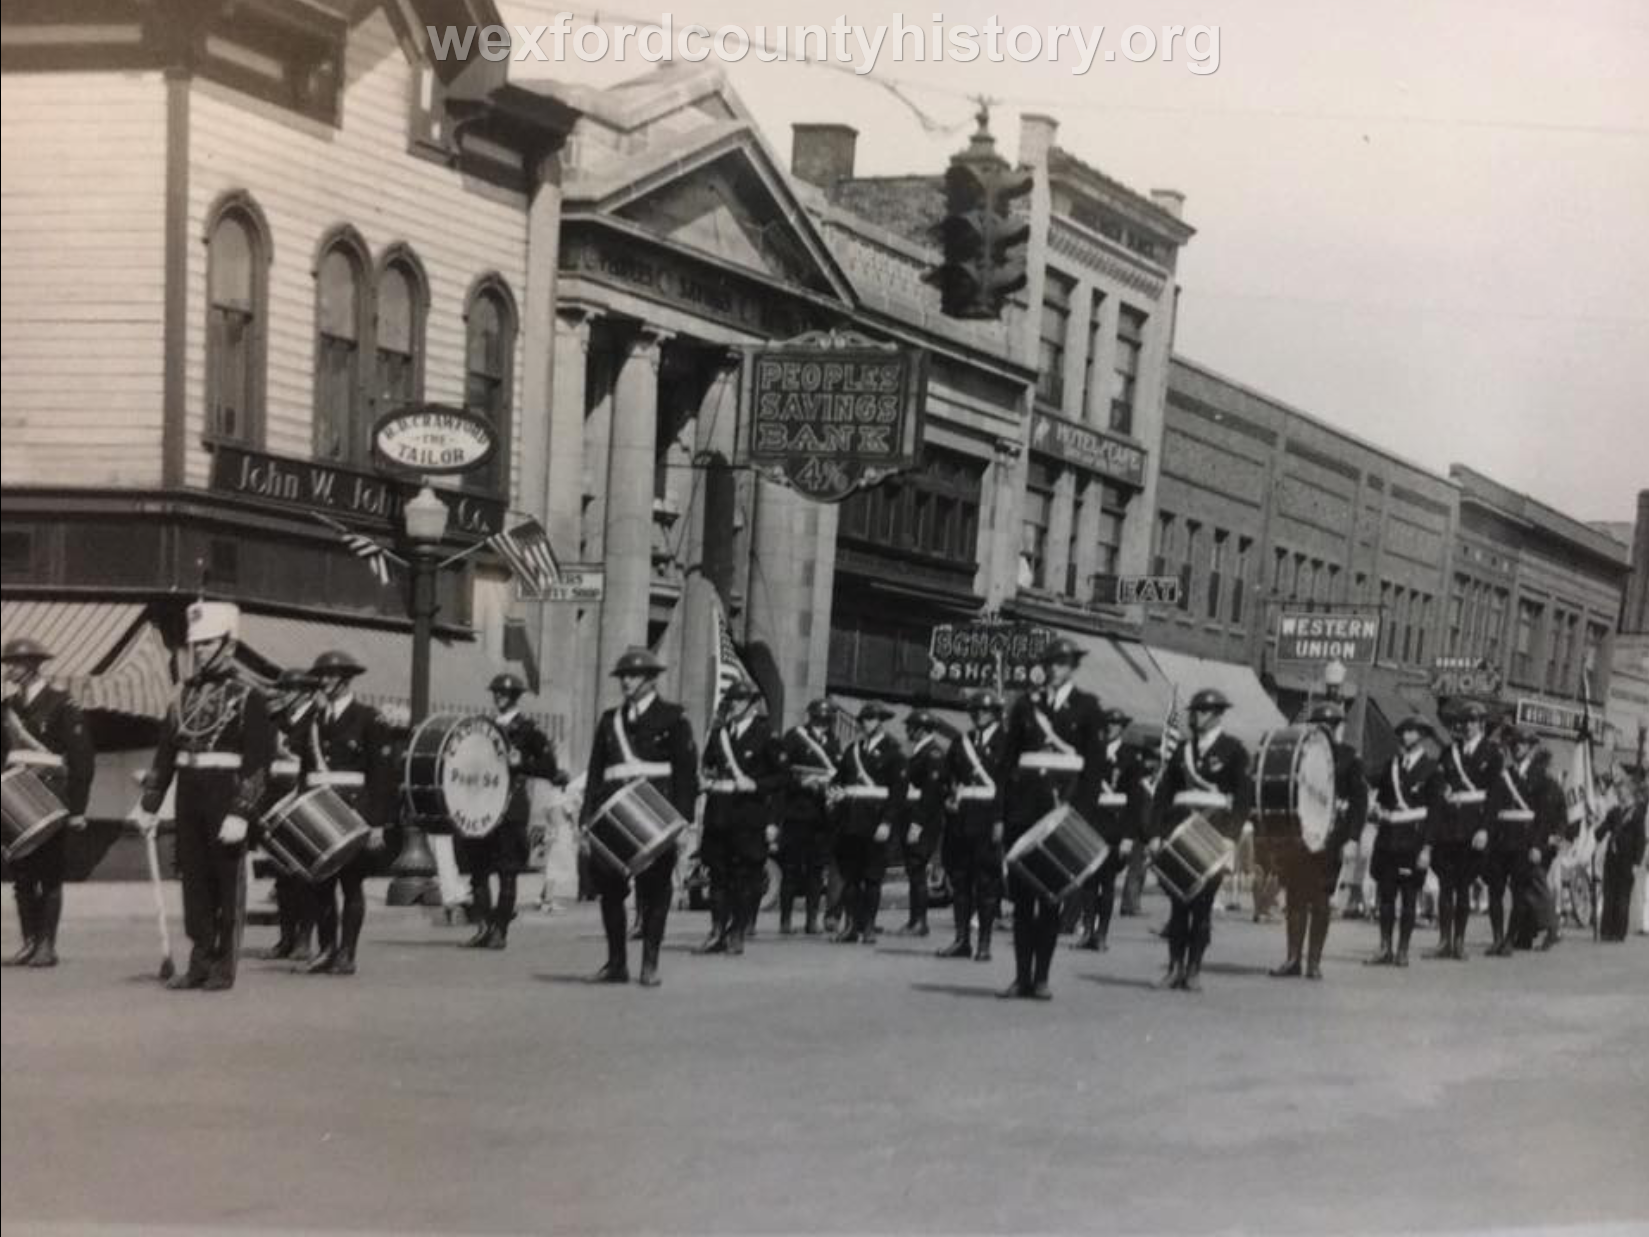 Cadillac-Parade-Unkown-Parade-Passing-By-North-Mitchell-Street-100-Block-West-Side-2